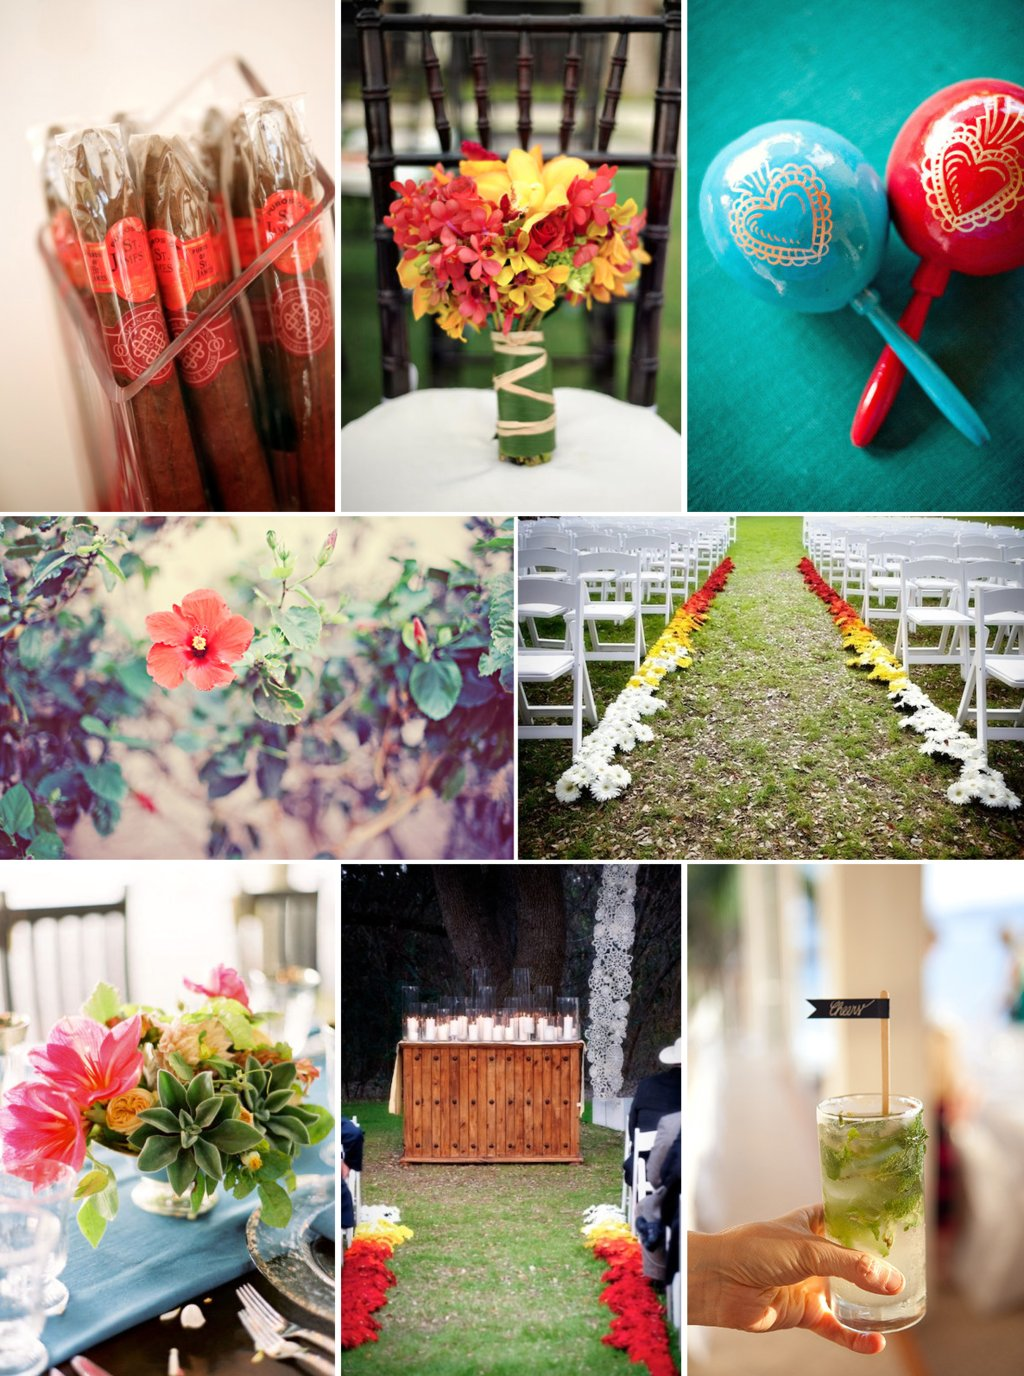 Wedding-theme-inspiration-havana-nights-tropical-cultural-weddings.full